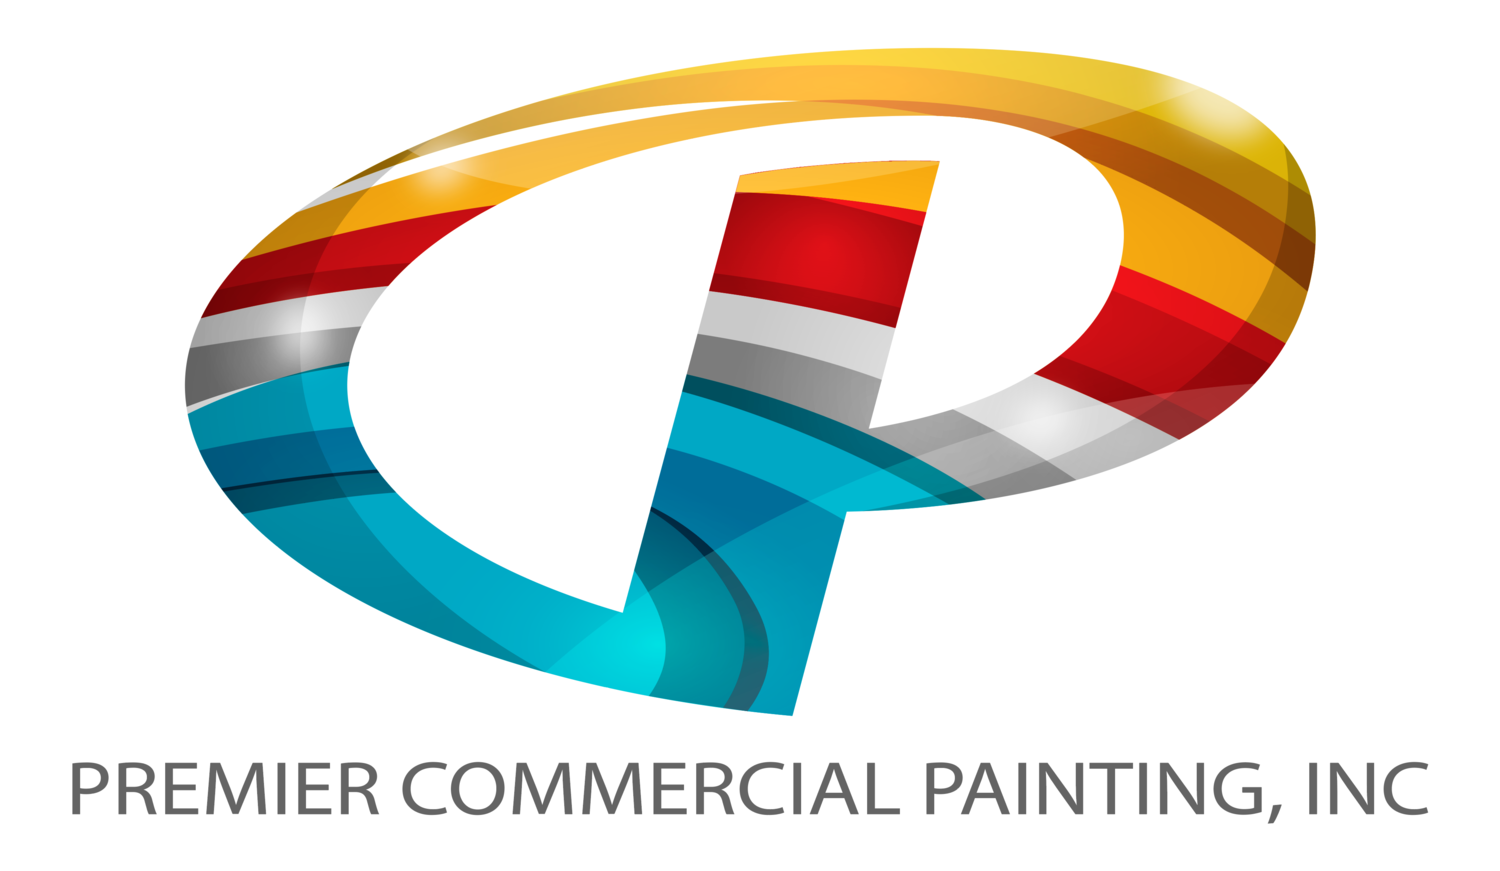 PREMIER  COMMERCIAL PAINTING, INC.